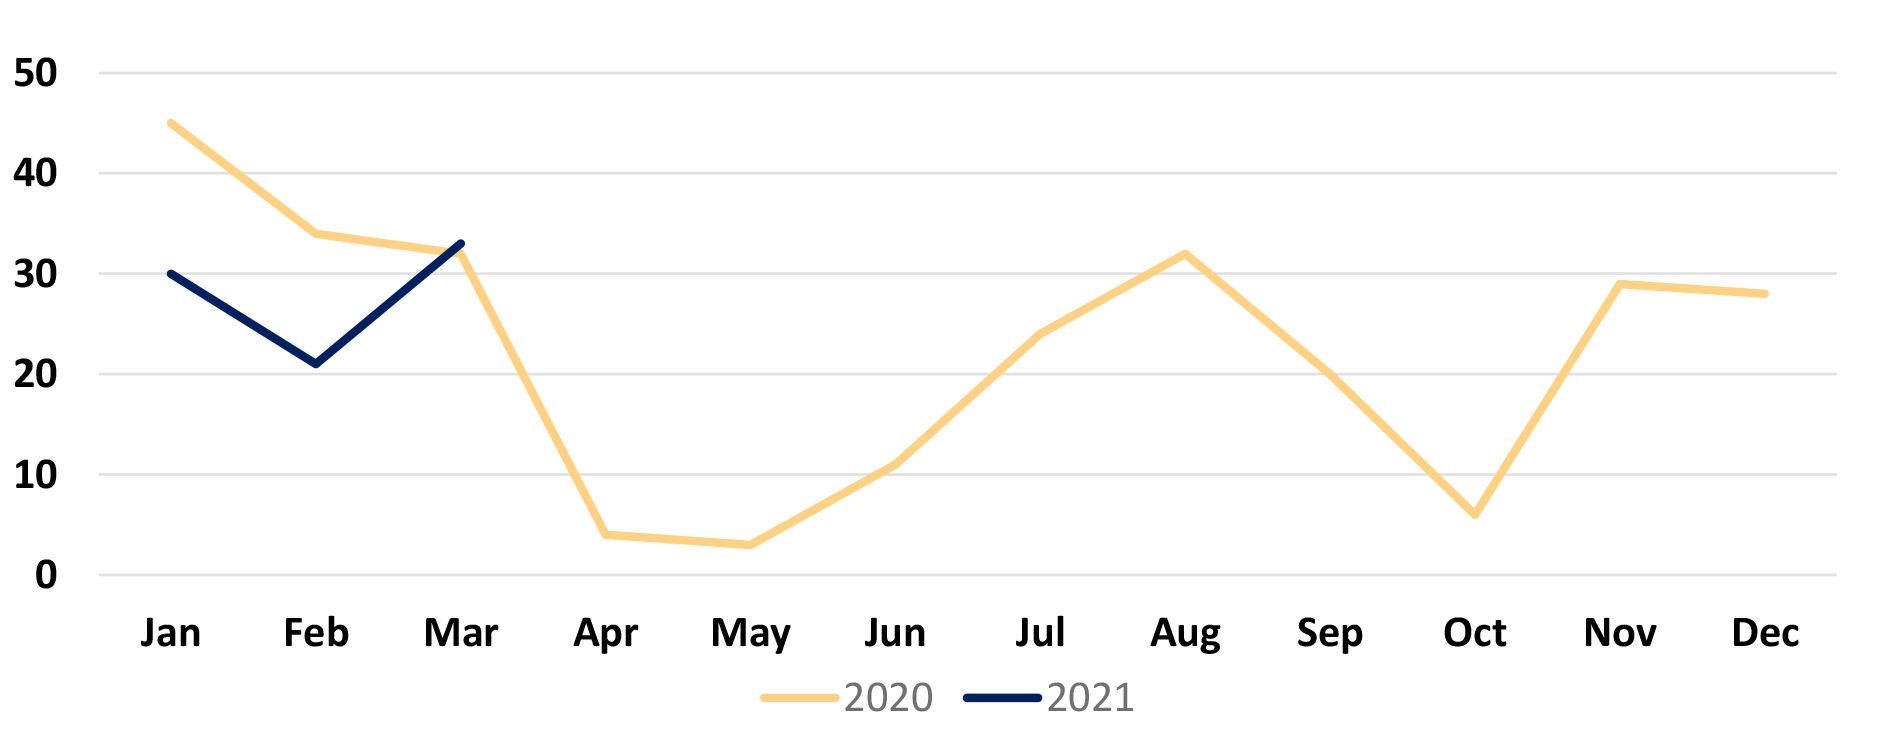 St. Louis County Incidents Chart for years 2020 and 2021.